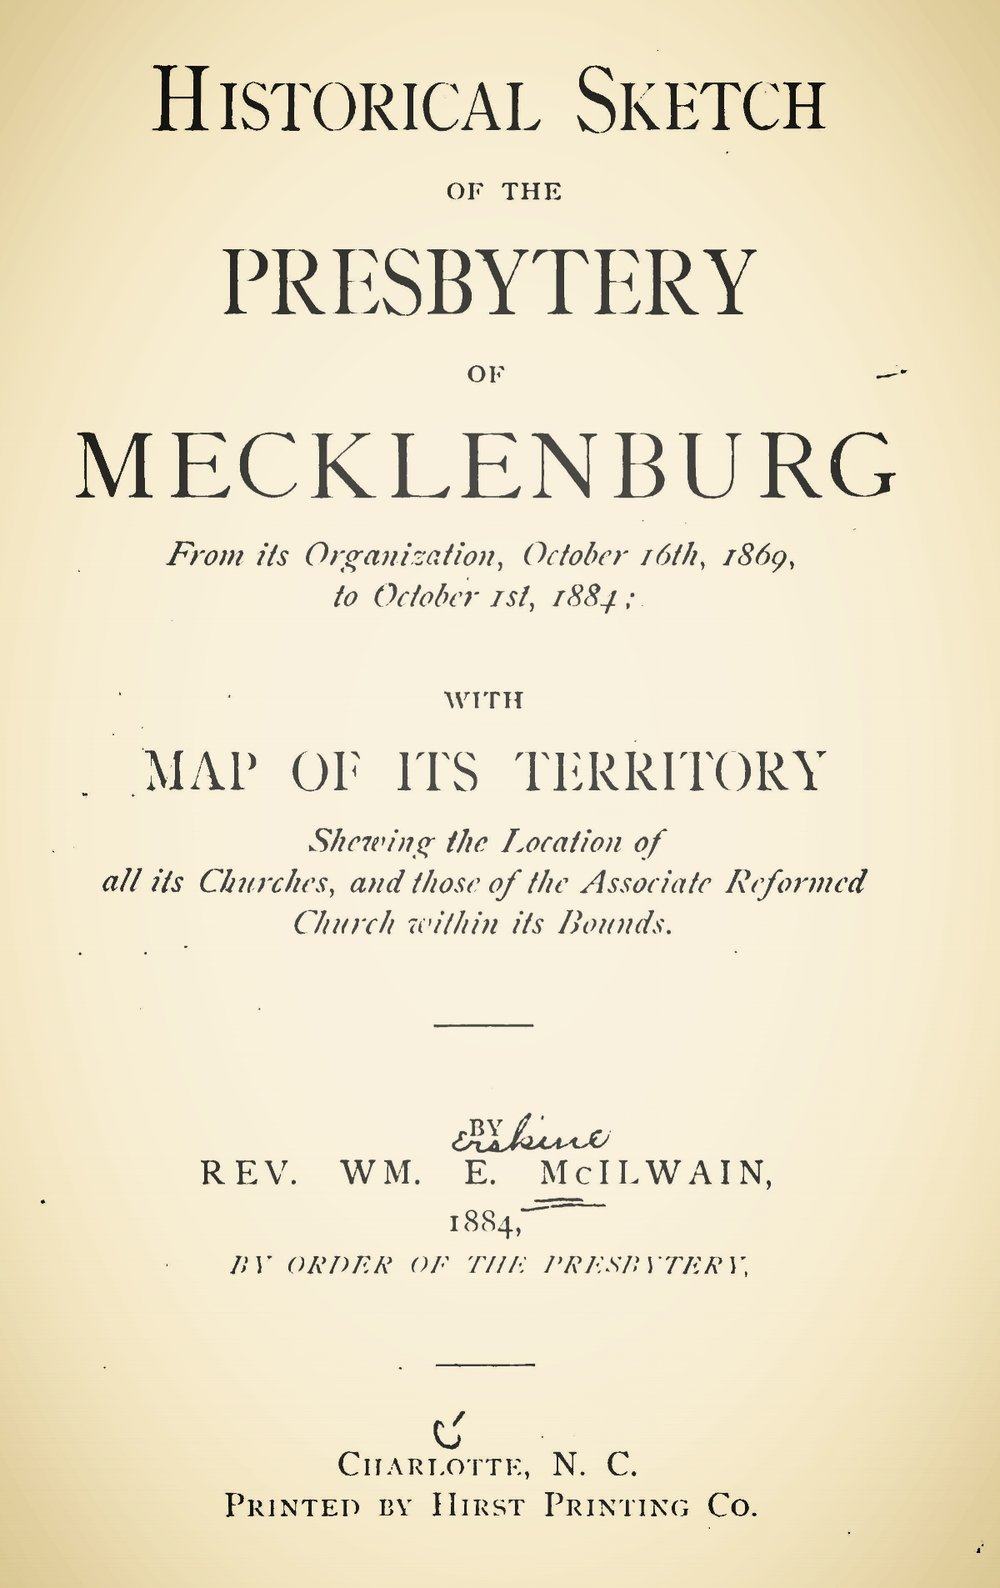 McIlwain, William Erskine, Historical Sketch of the Presbytery of Mecklenburg Title Page.jpg